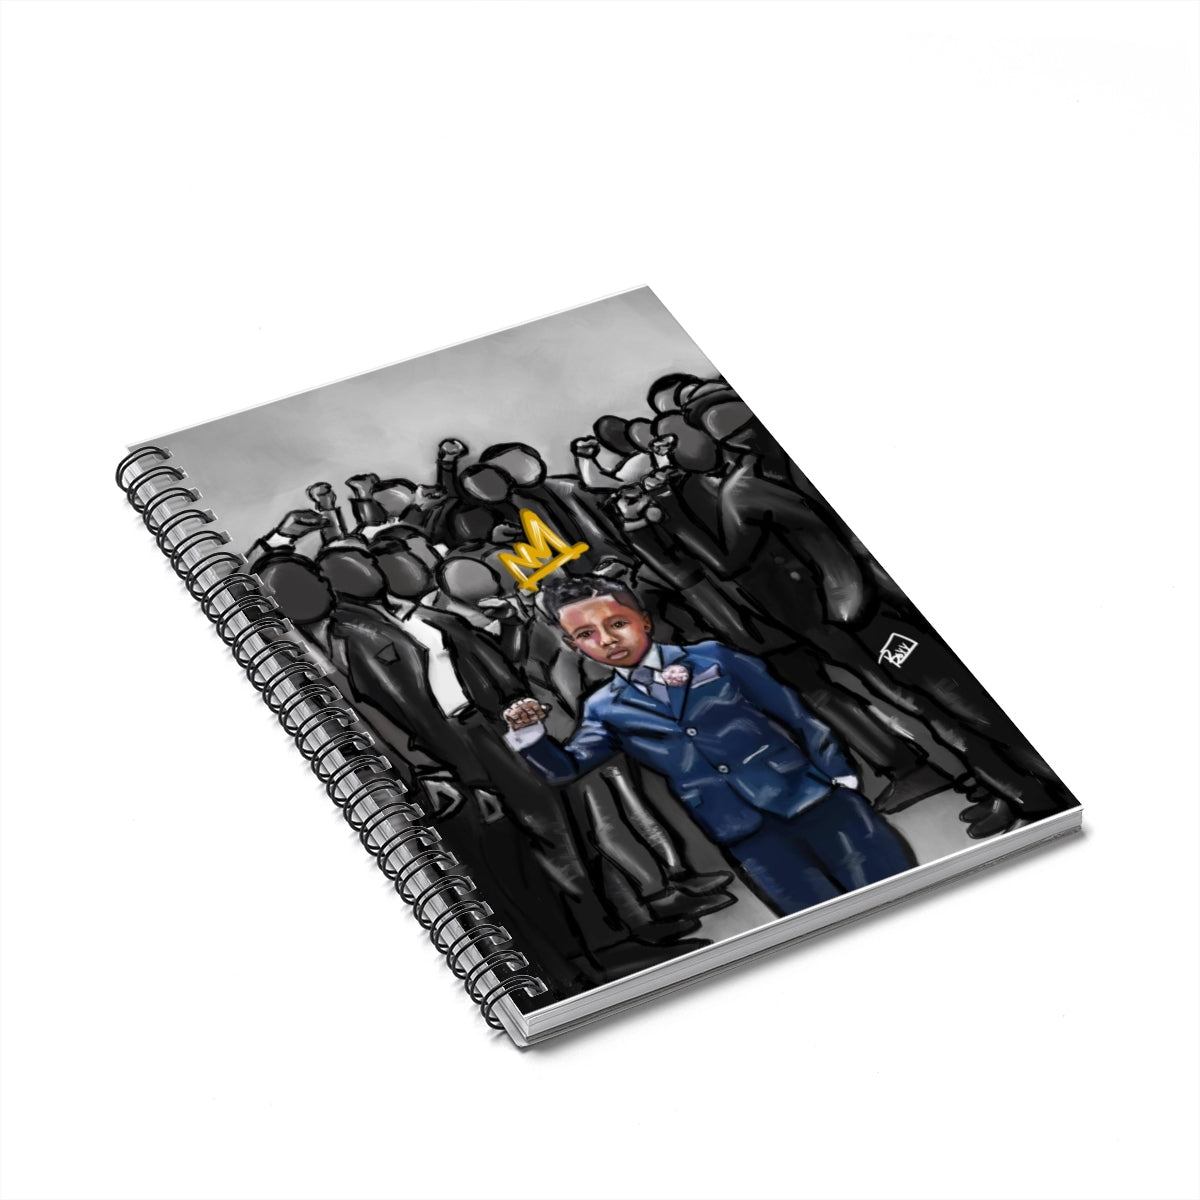 Uplift Spiral Notebook - Ruled Line